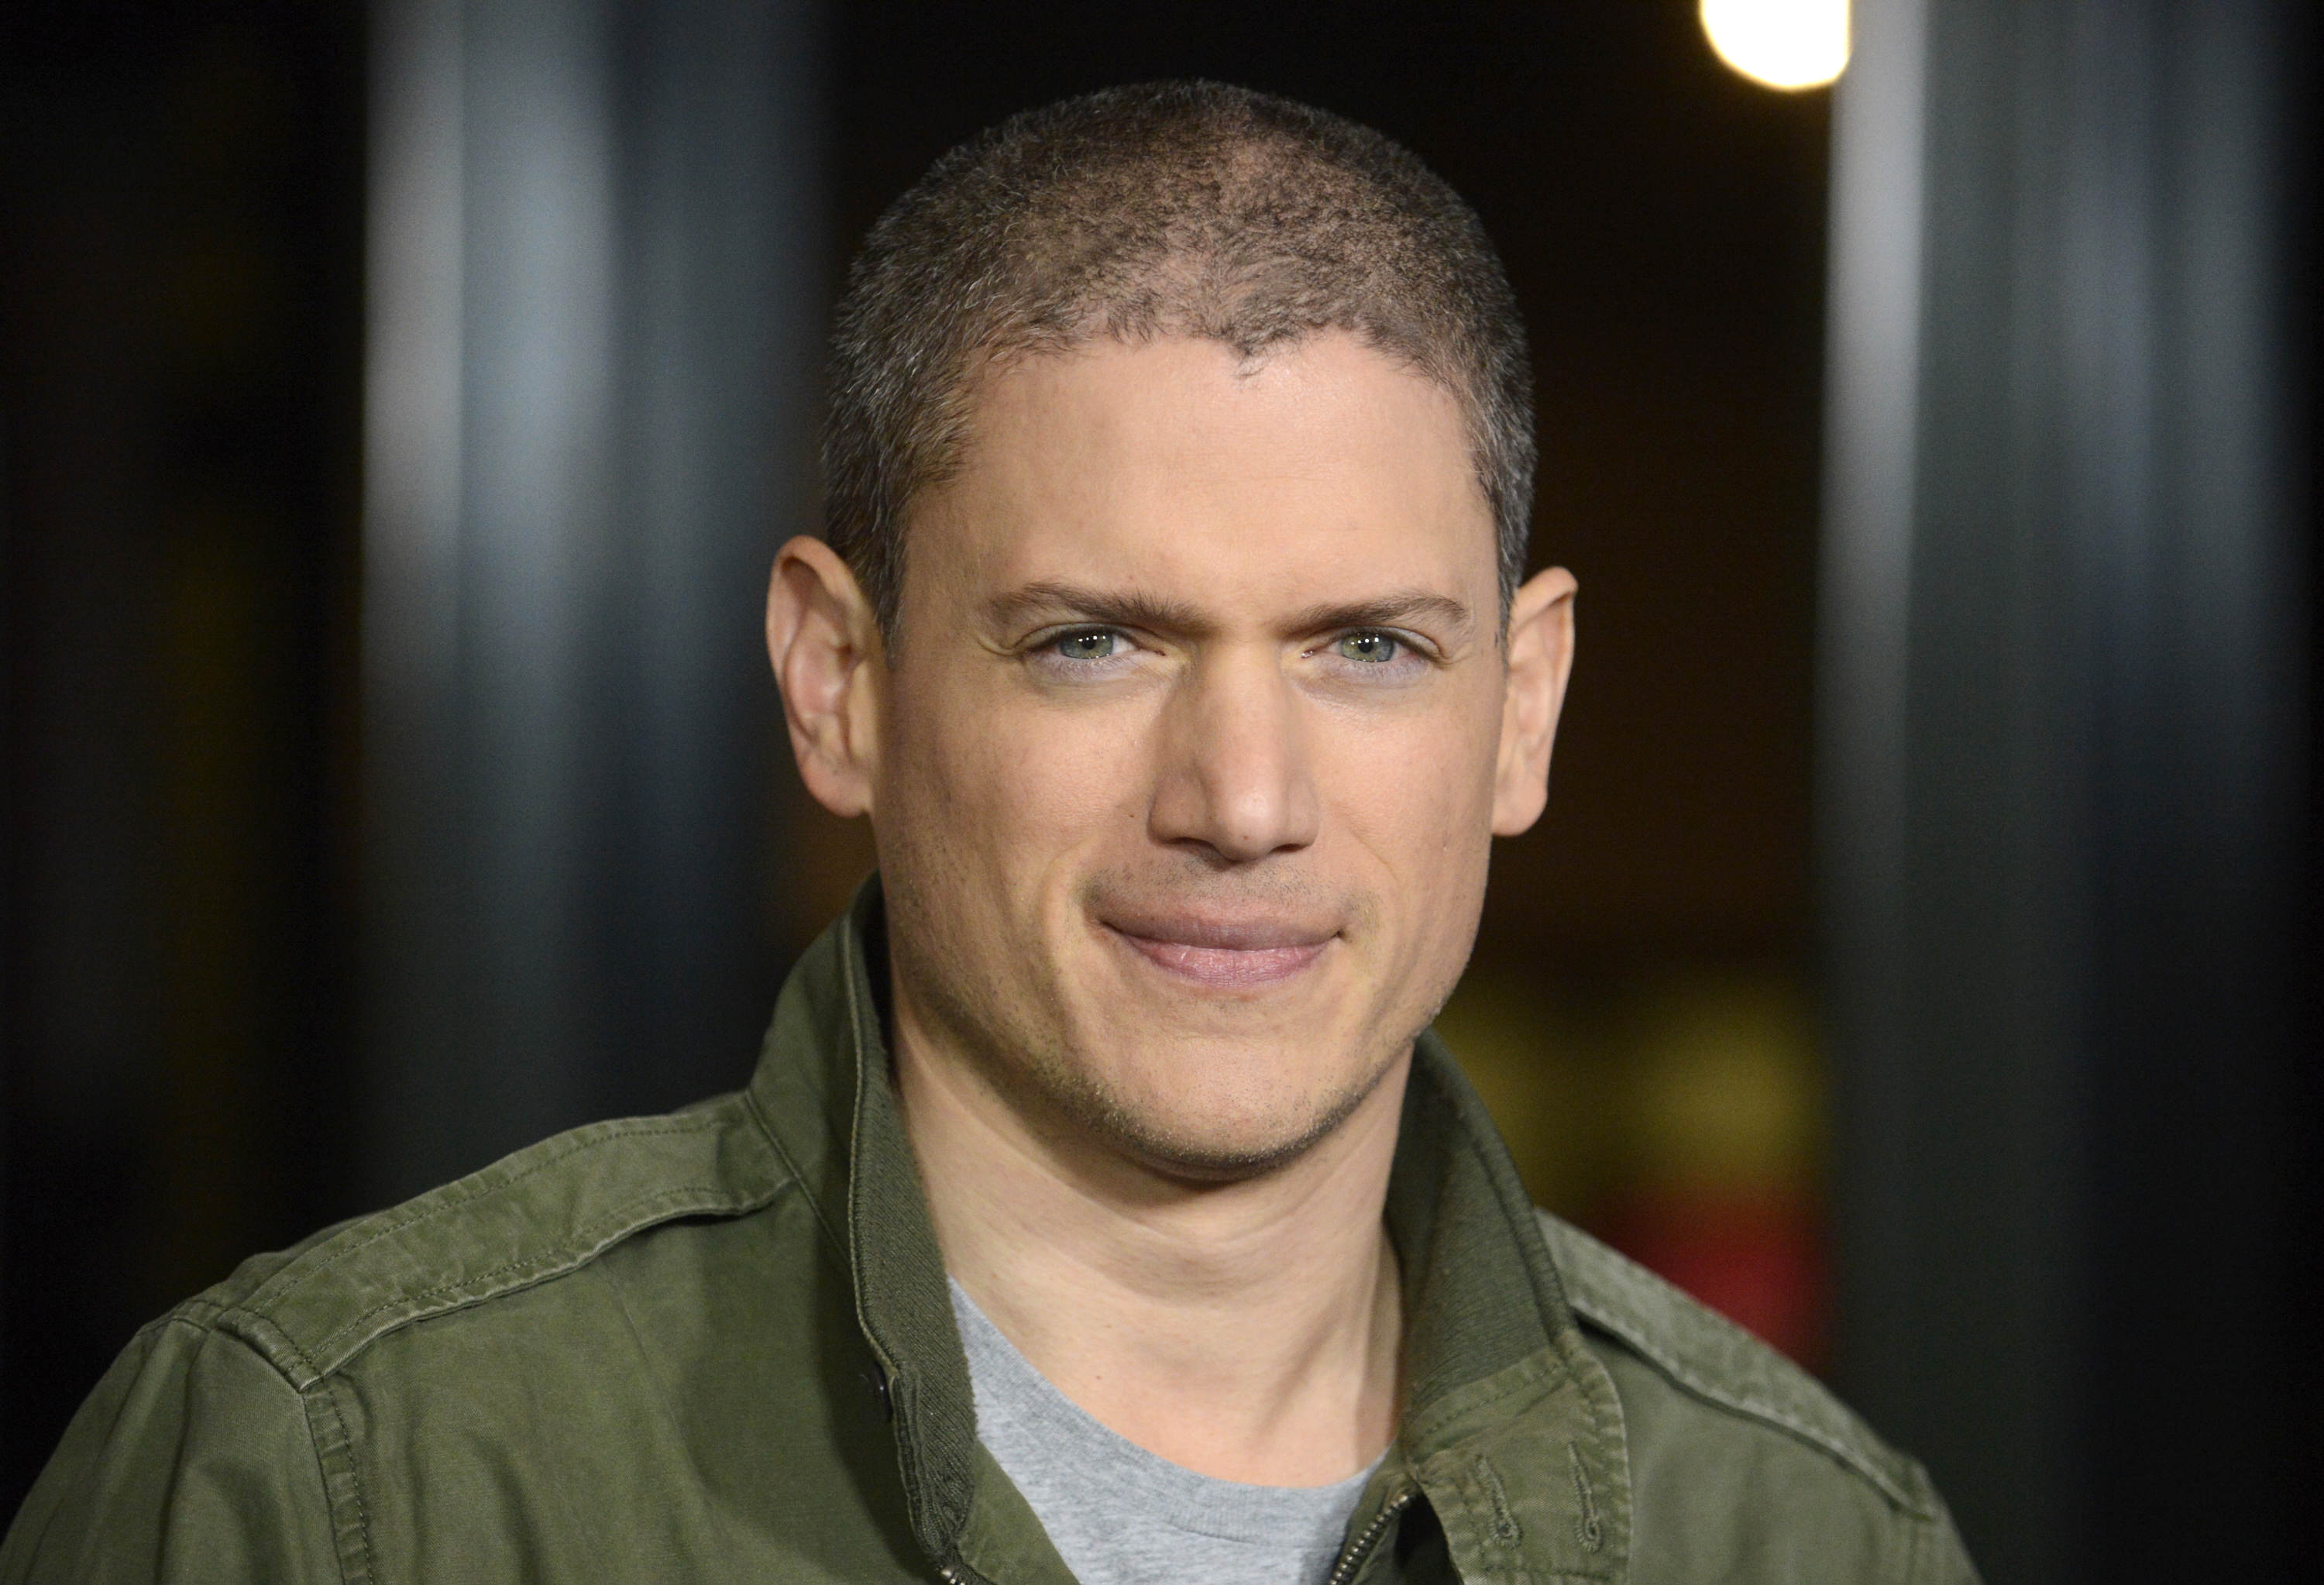 RTR4N8GY Wentworth Miller Tackles His Bullies On Facebook With Emotional Post